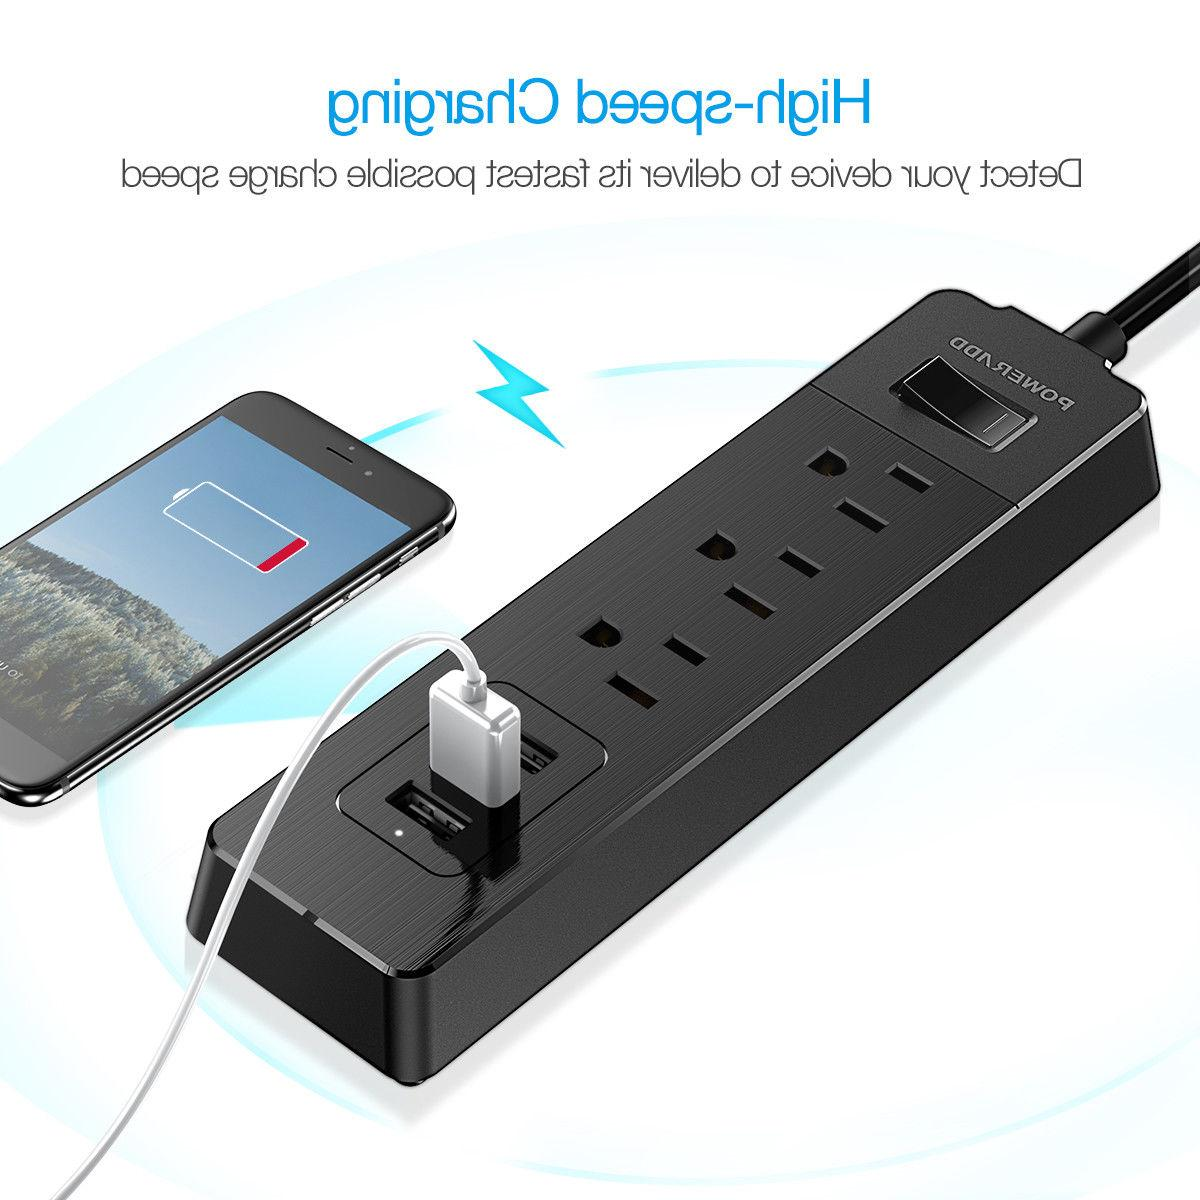 3 Outlet Power Strip Surge Protector with 3 USB Ports Socket